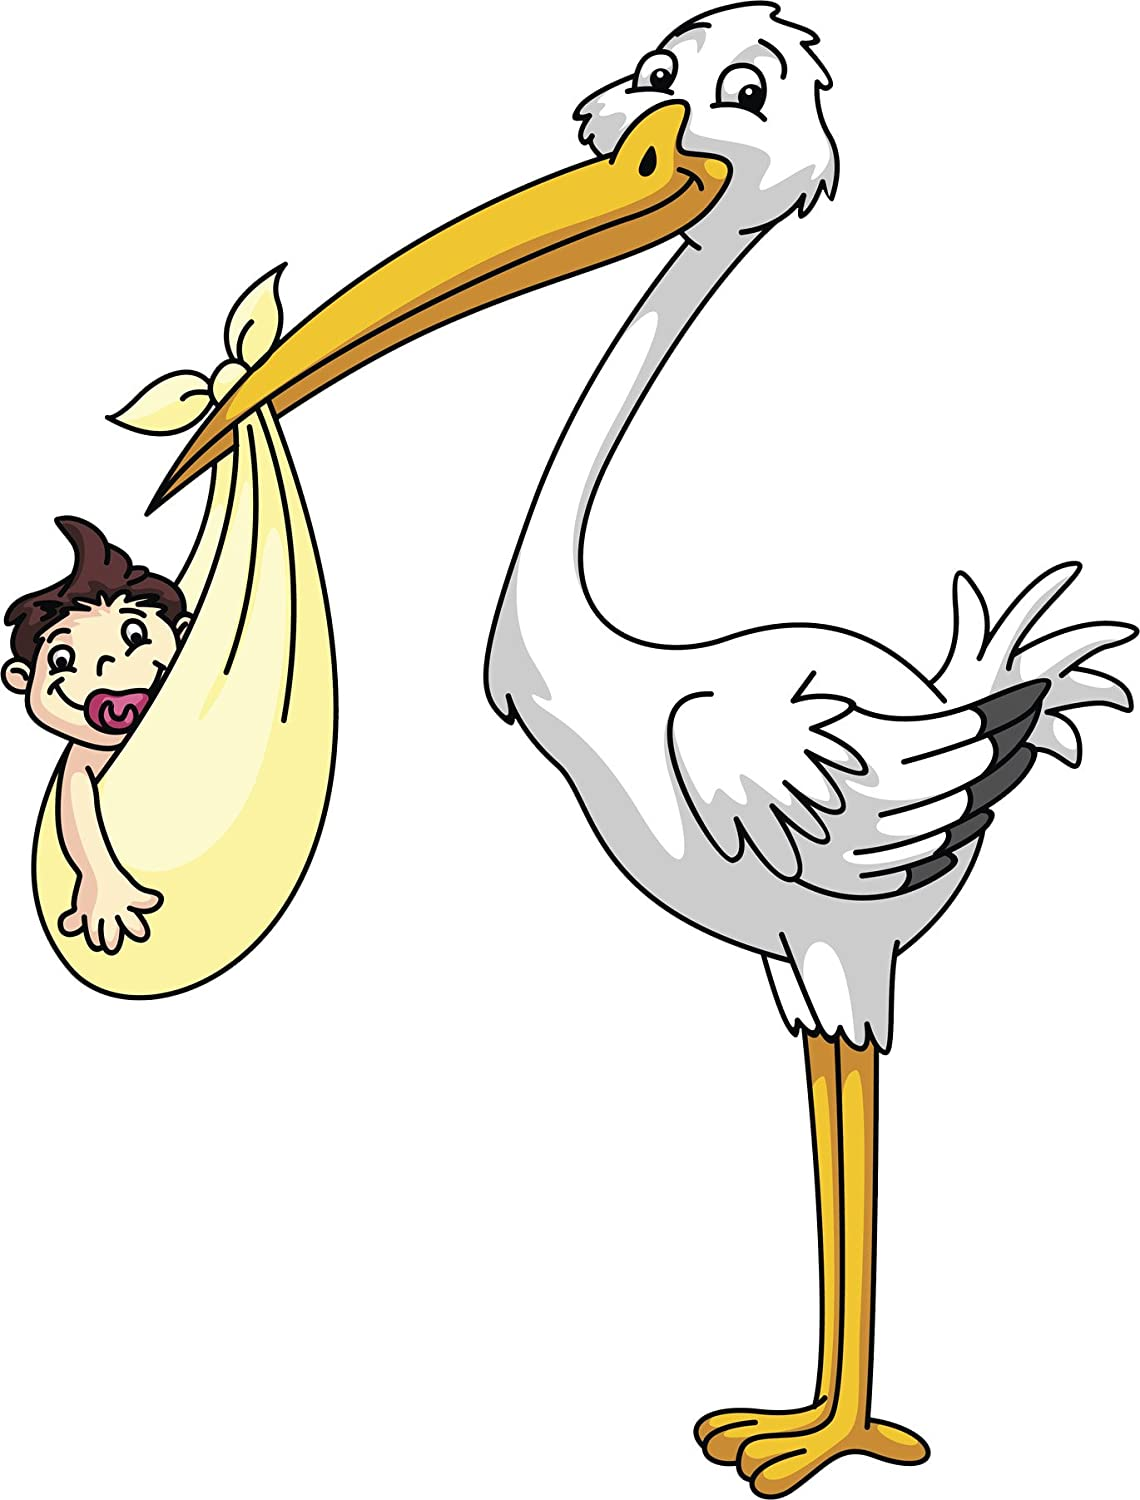 Amazon Com Cute Happy Delivery Stork With Baby Shower Cartoon Vinyl Decal Sticker 12 Tall Automotive